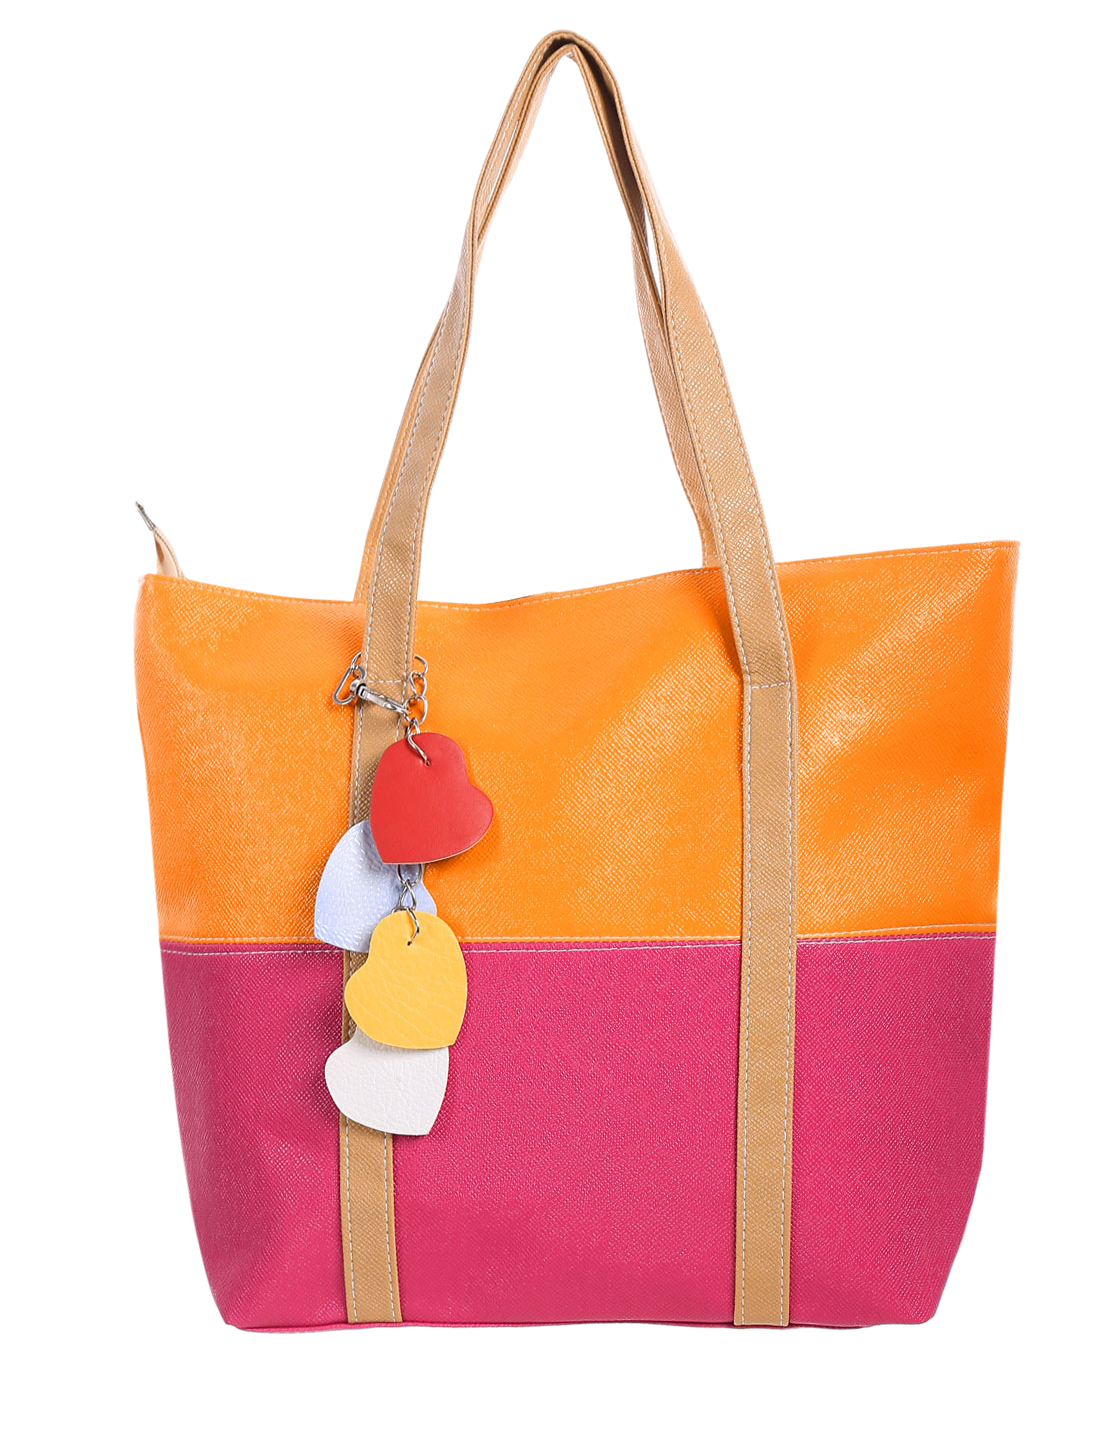 Ladies Dual Handles Color Block Zippered Totes Fuchsia Dark Orange